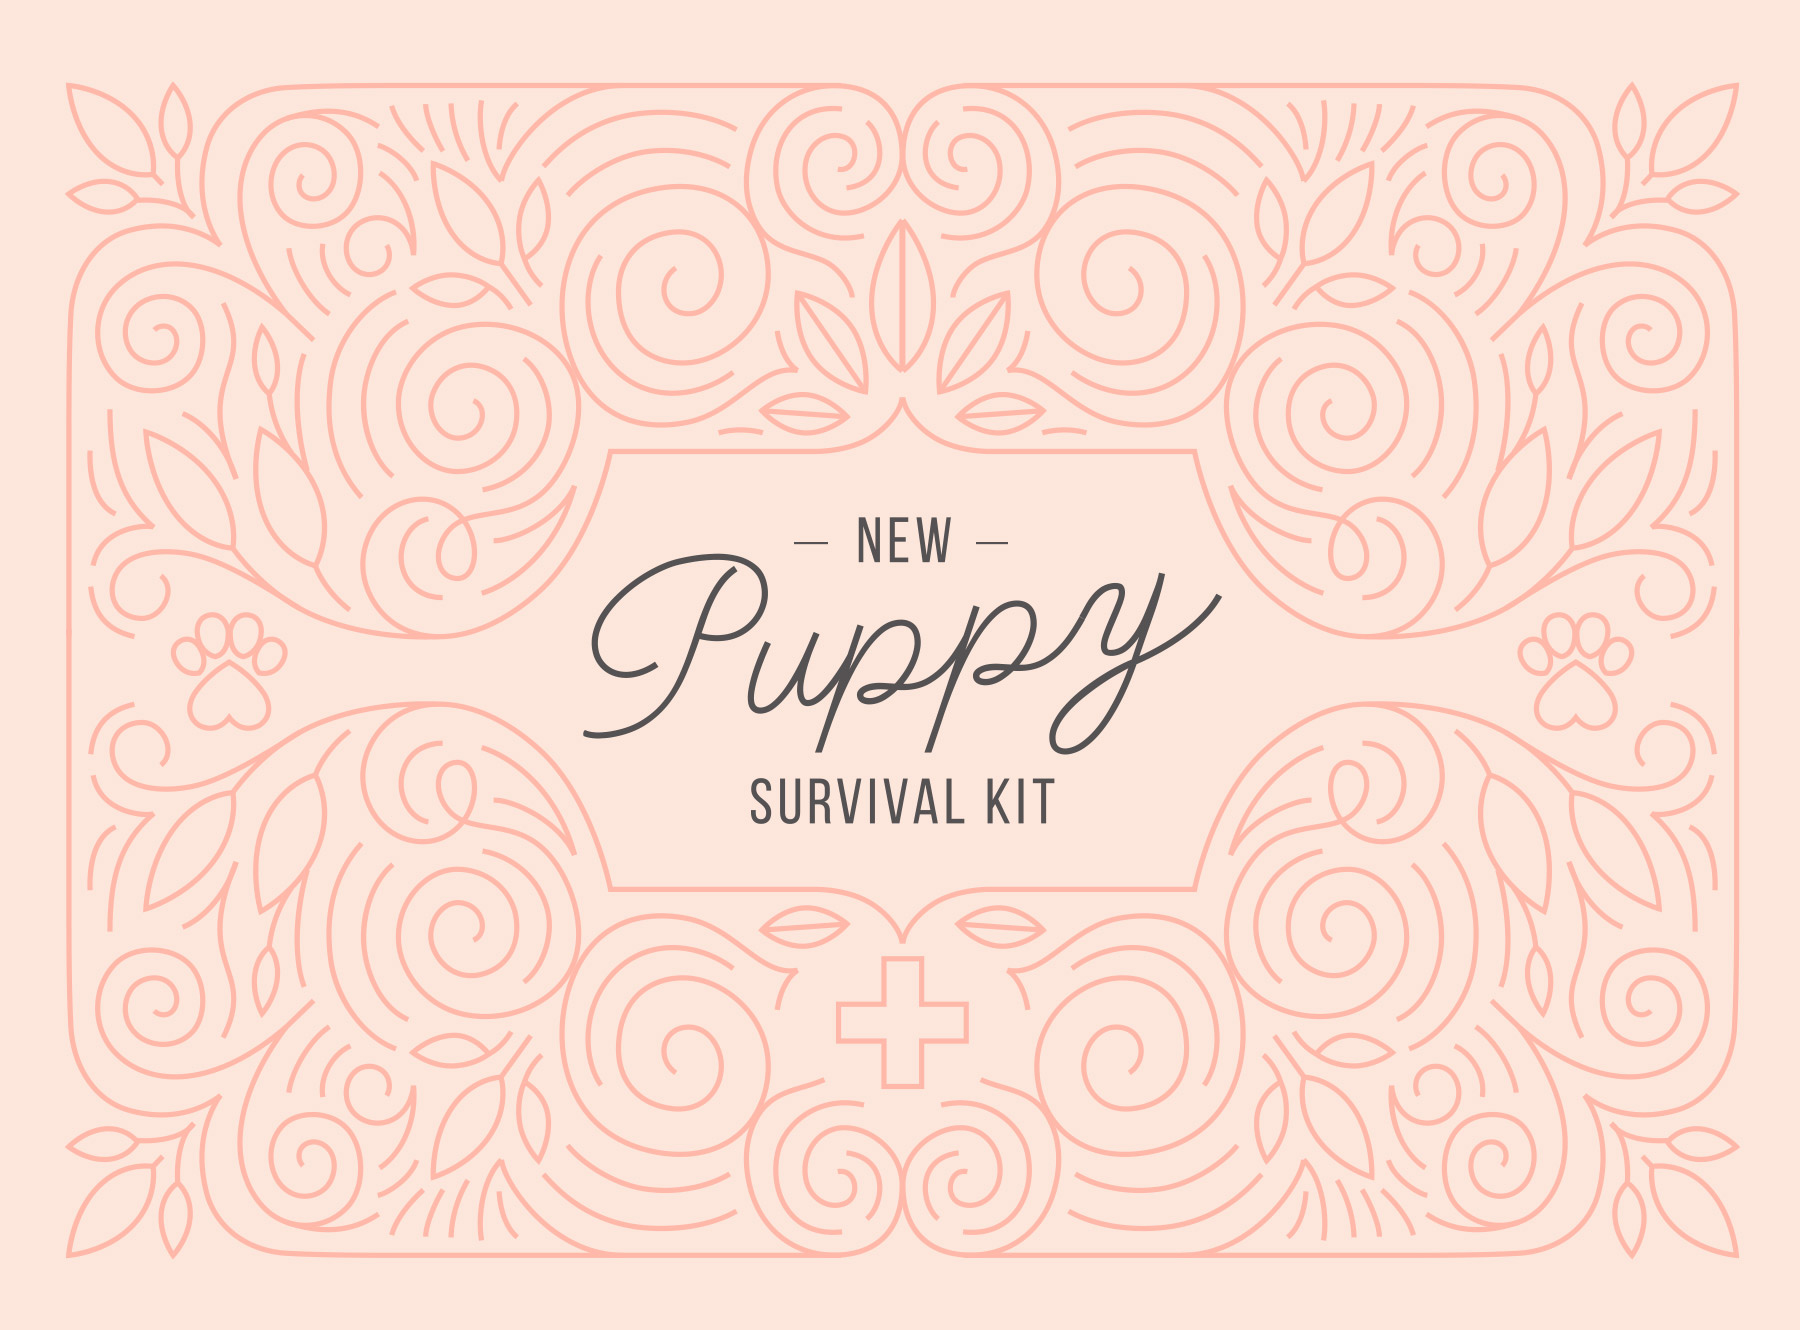 The puppy survival kit